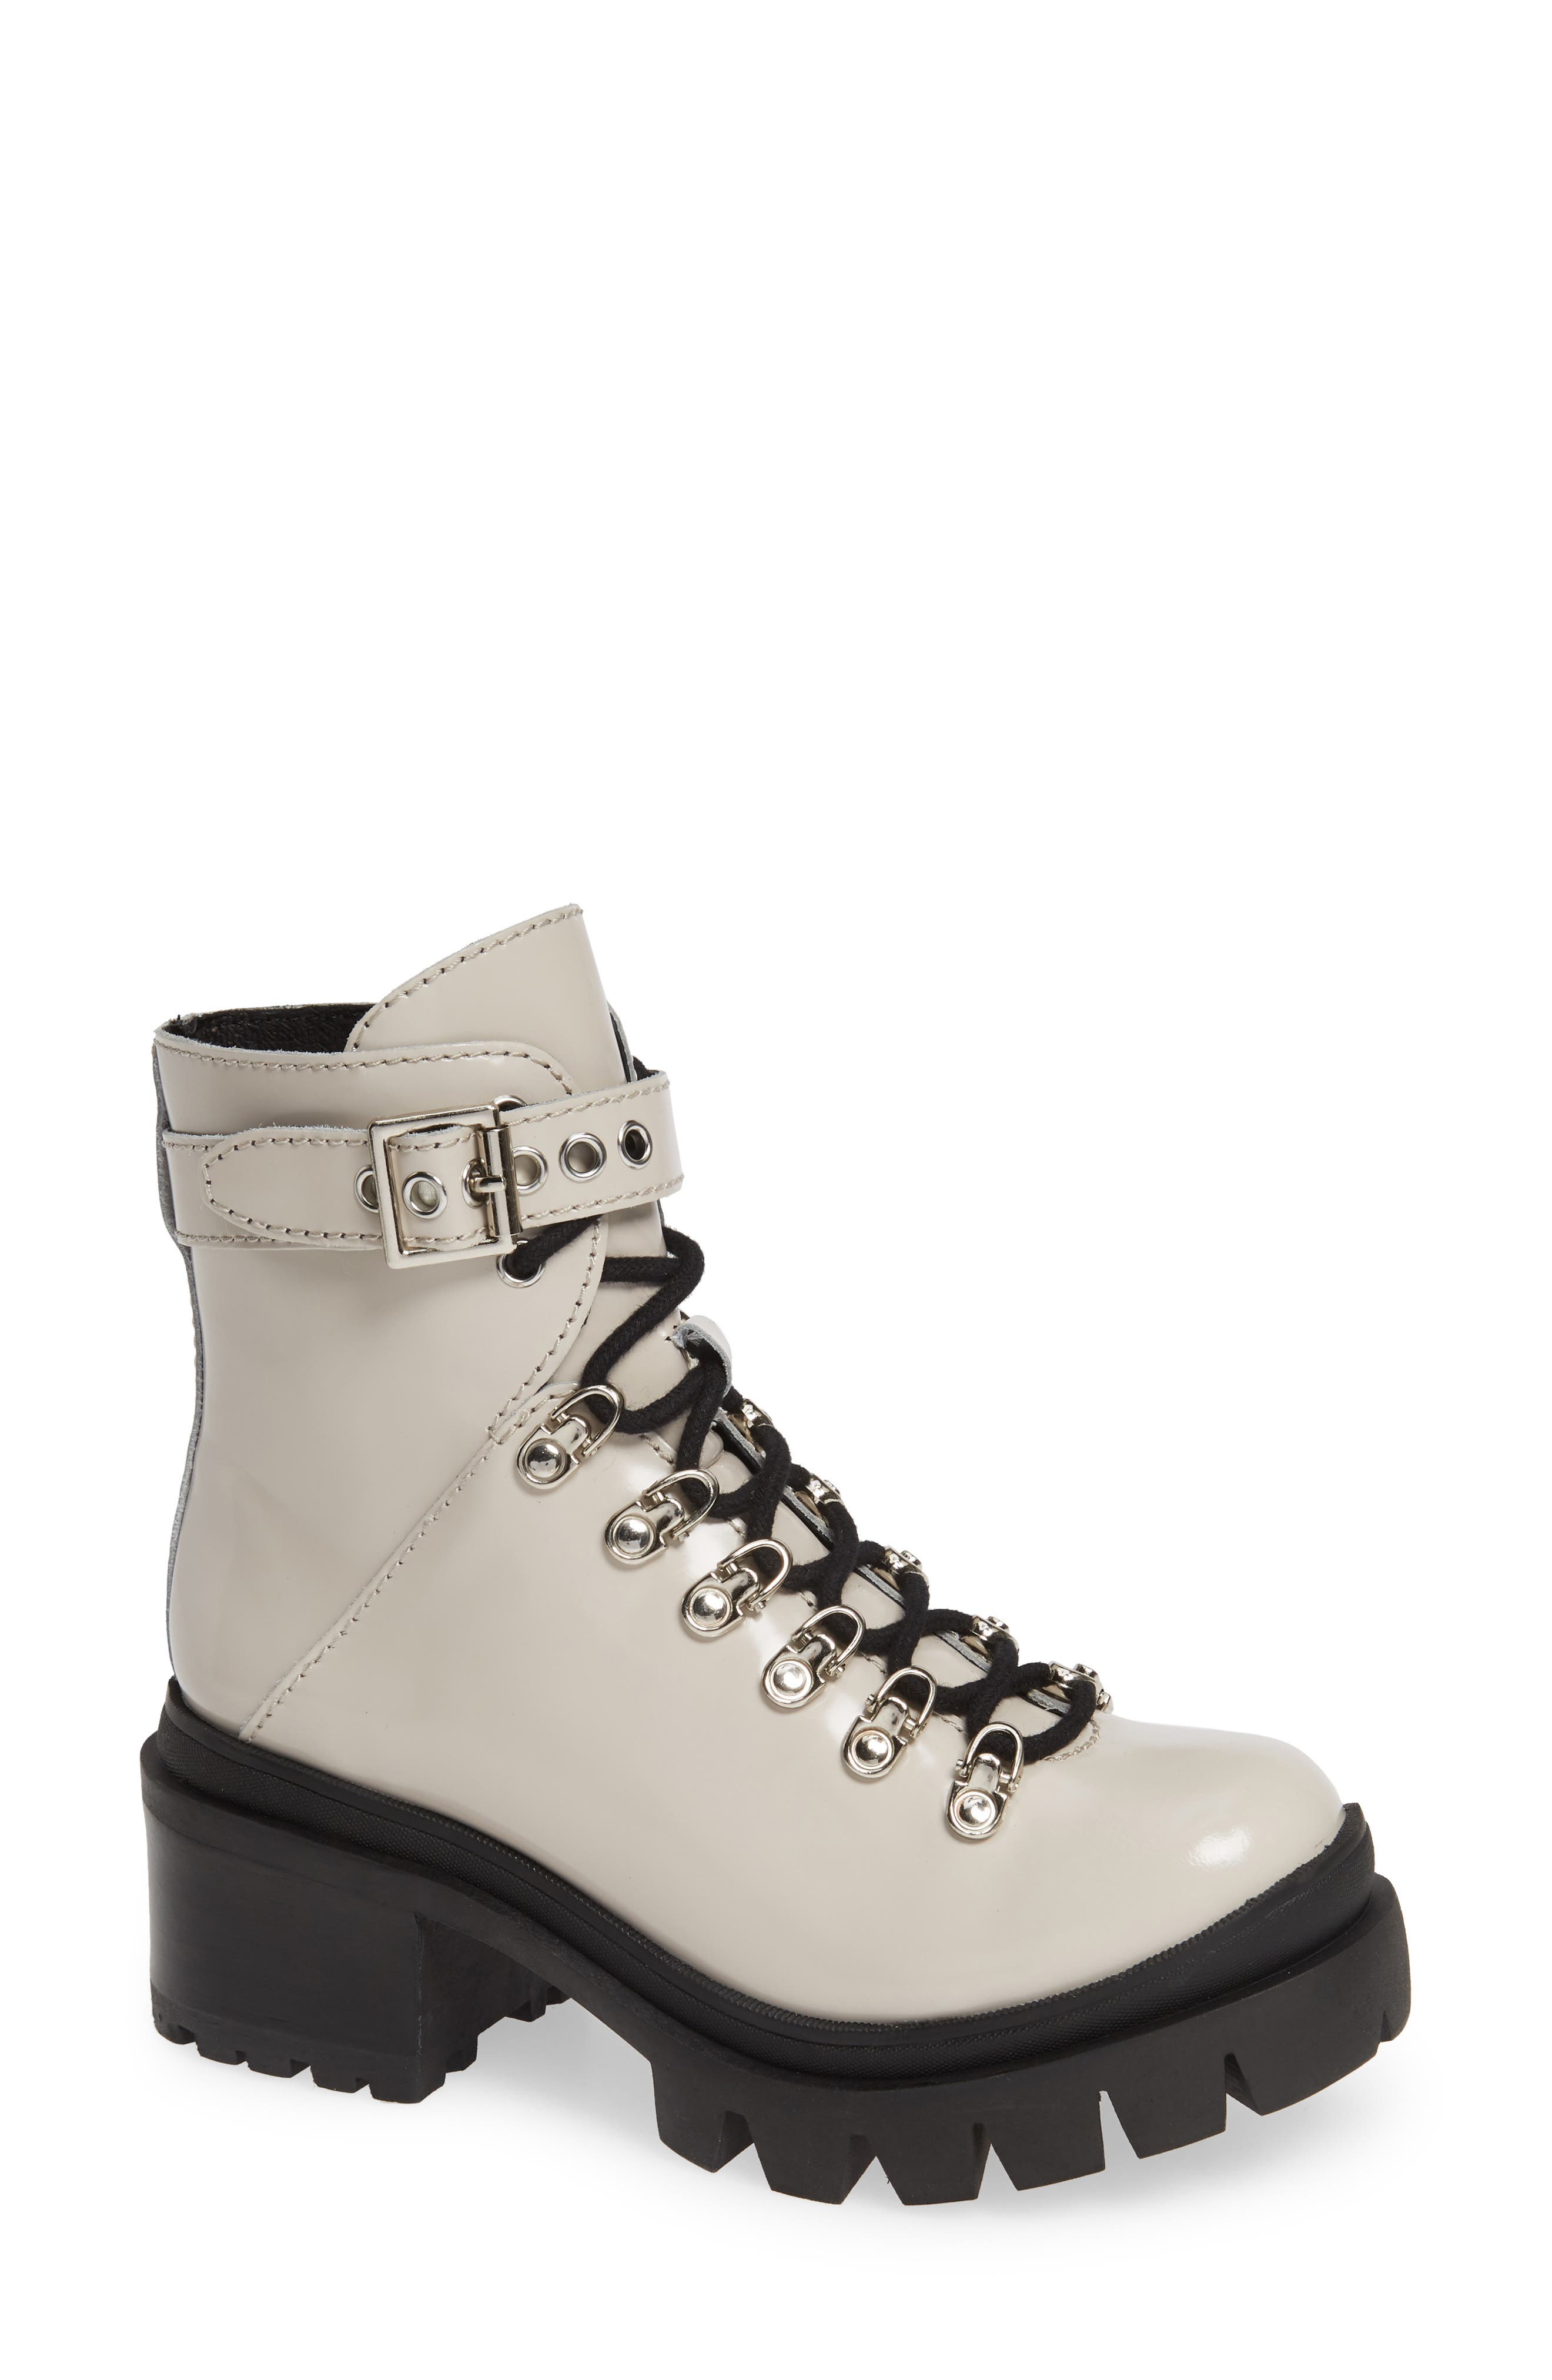 JEFFREY CAMPBELL Czech Lace-Up Boot in Ivory Faux Leather